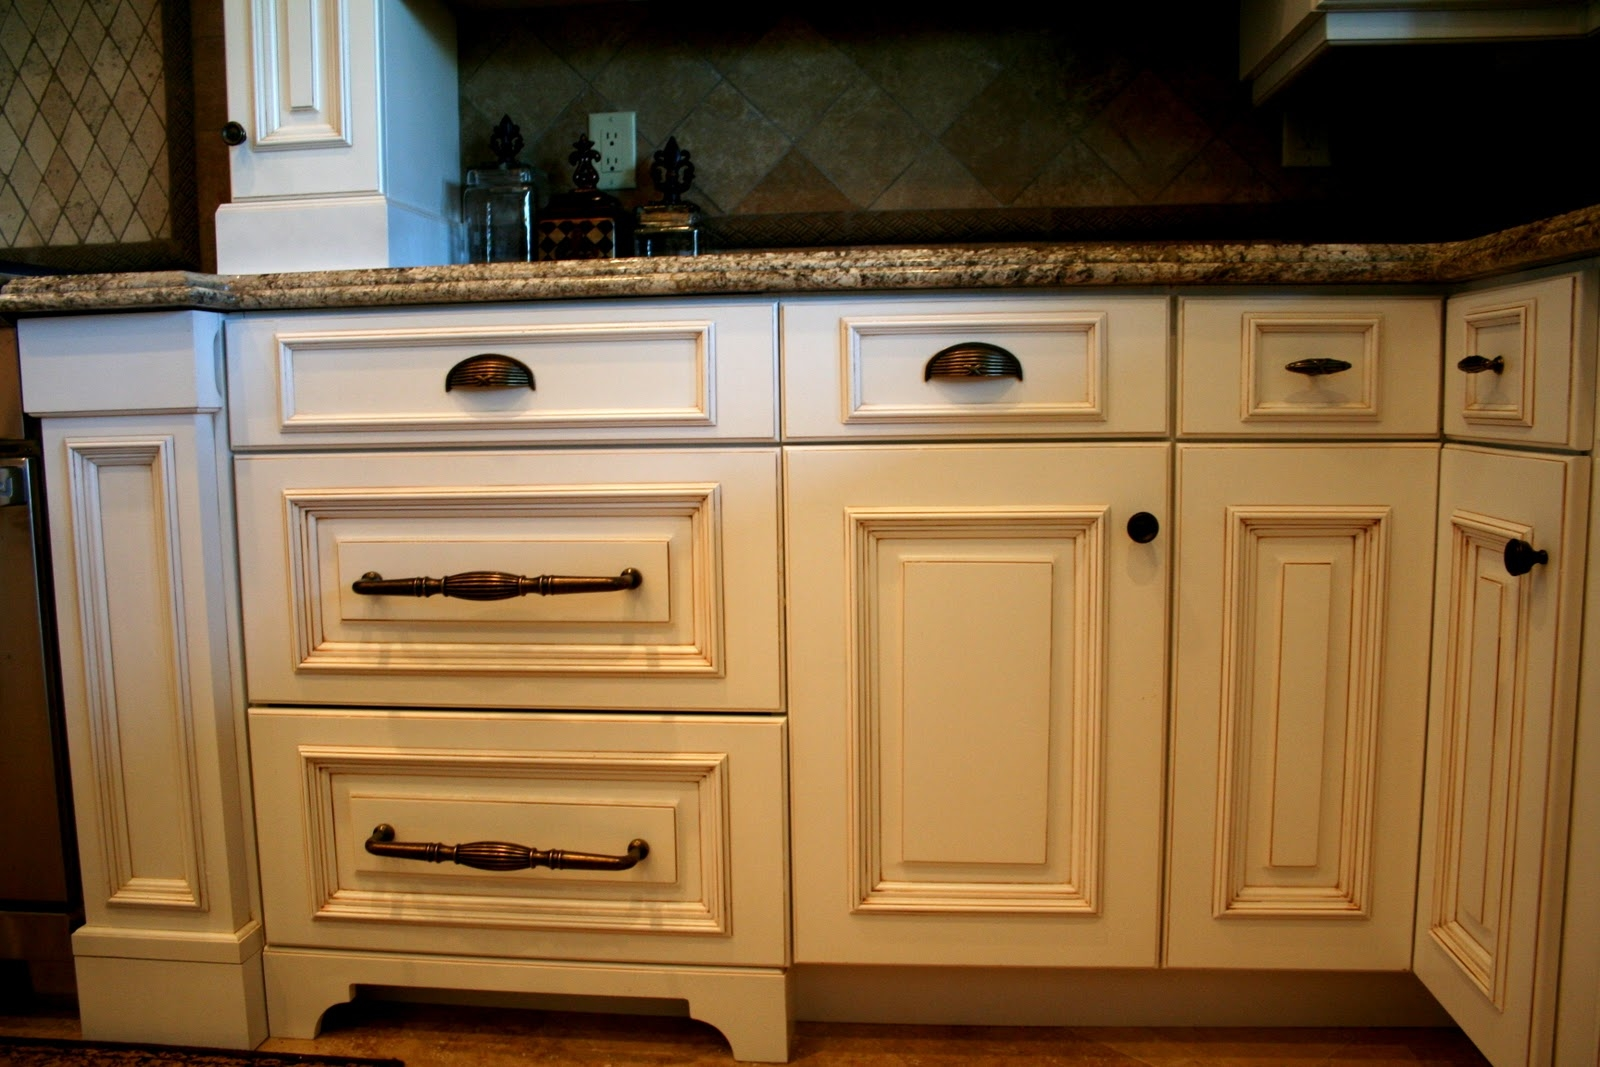 Hardware Handles For Kitchen Cabinets